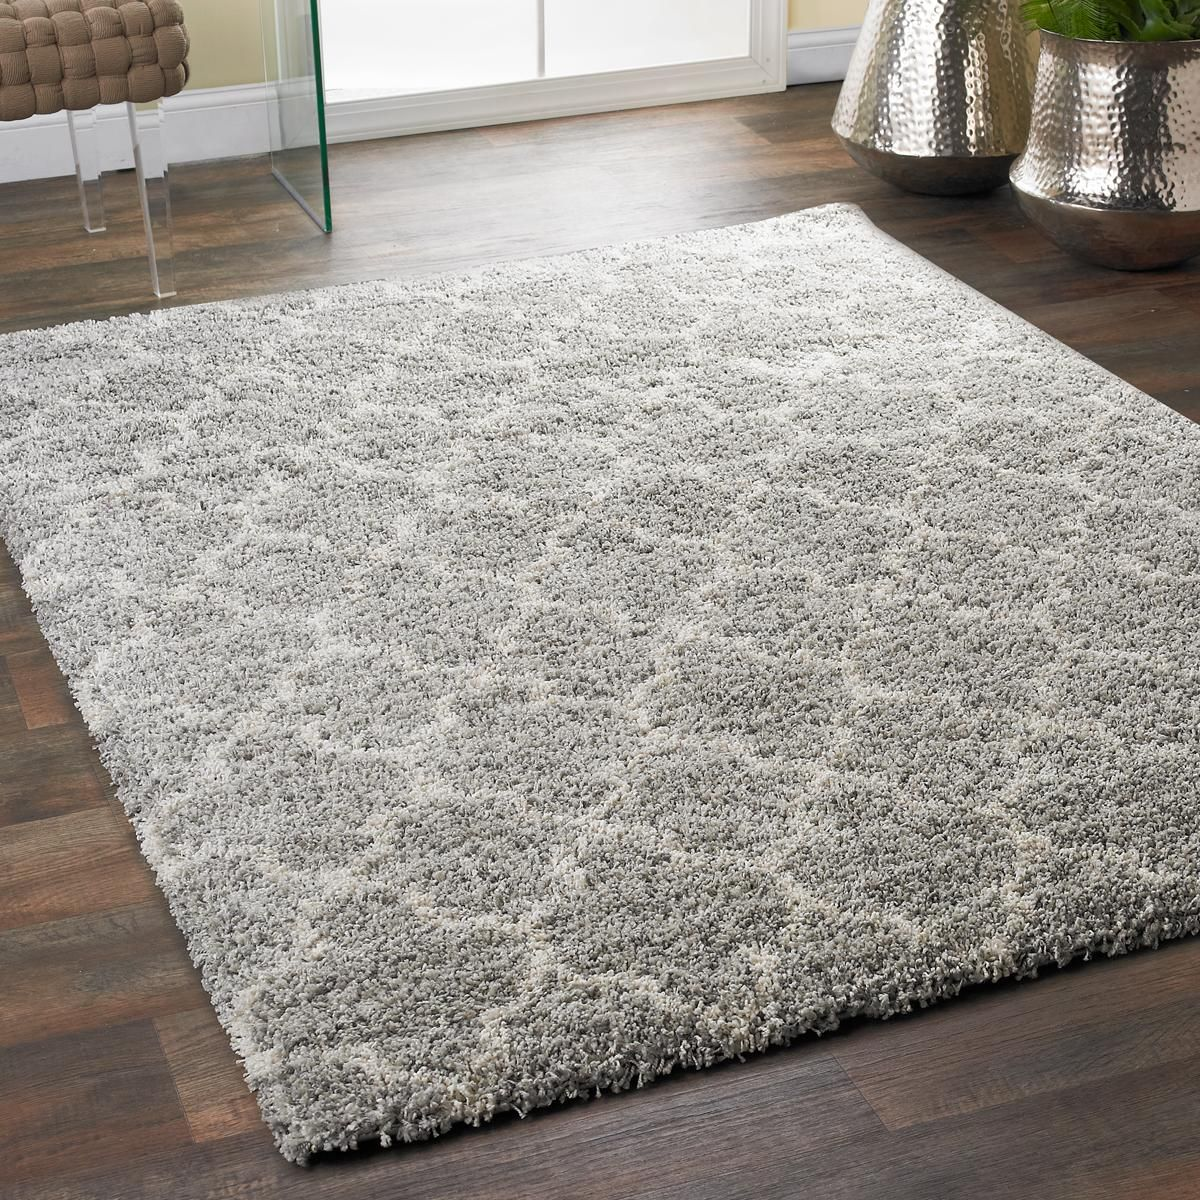 Lofty Trellis Plush Area Rug Lofty Trellis